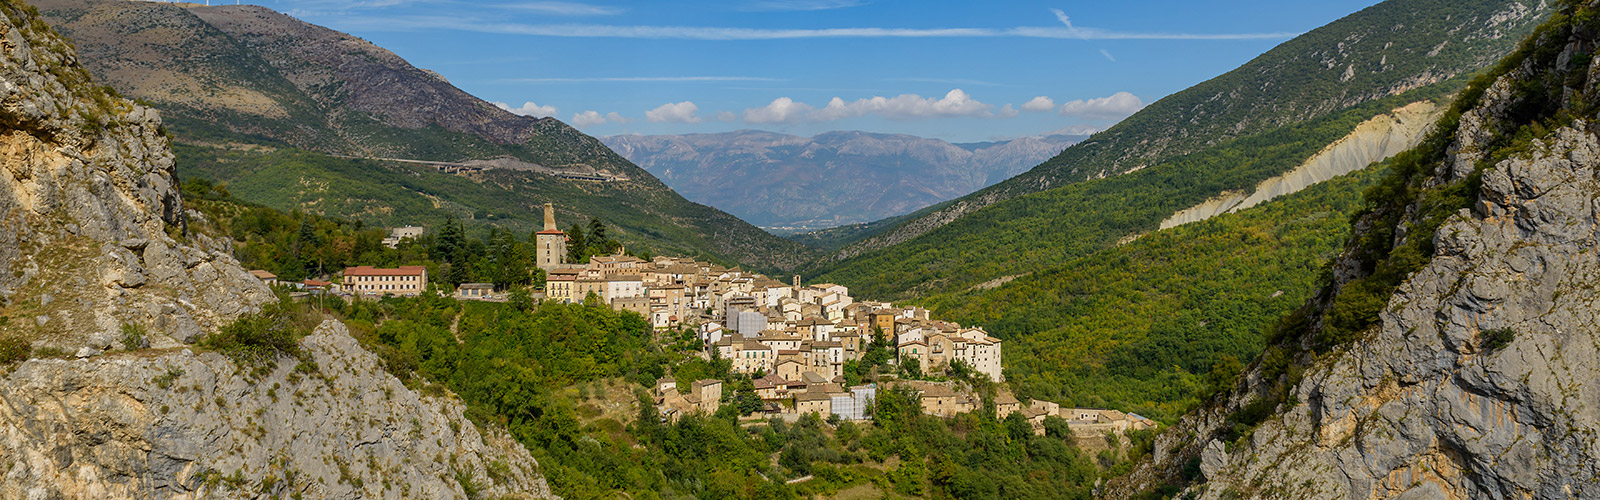 The town of Sulmona Italy